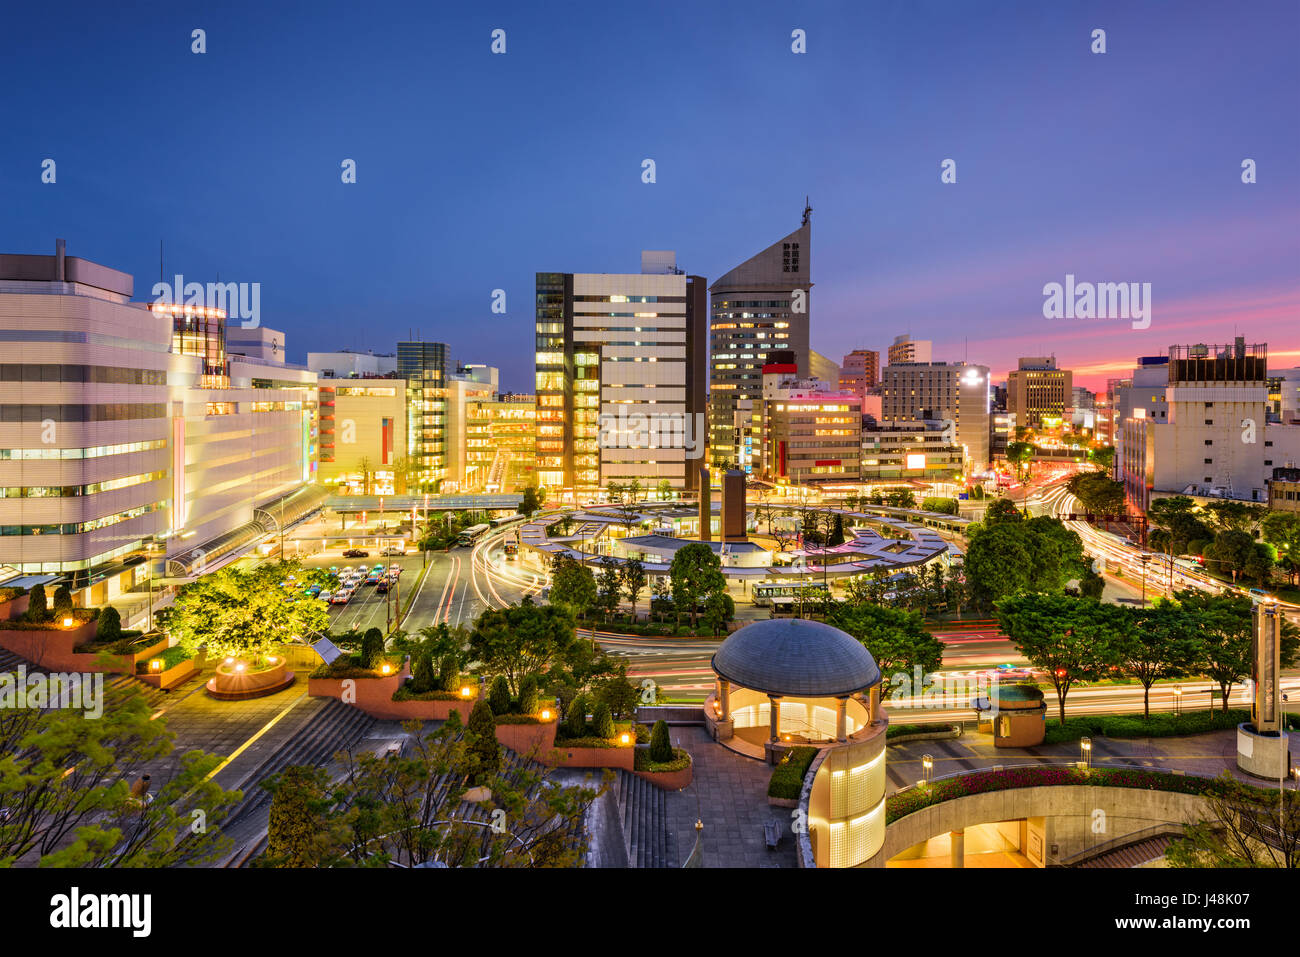 Hamamatsu, Japan city skyline at twilight. - Stock Image